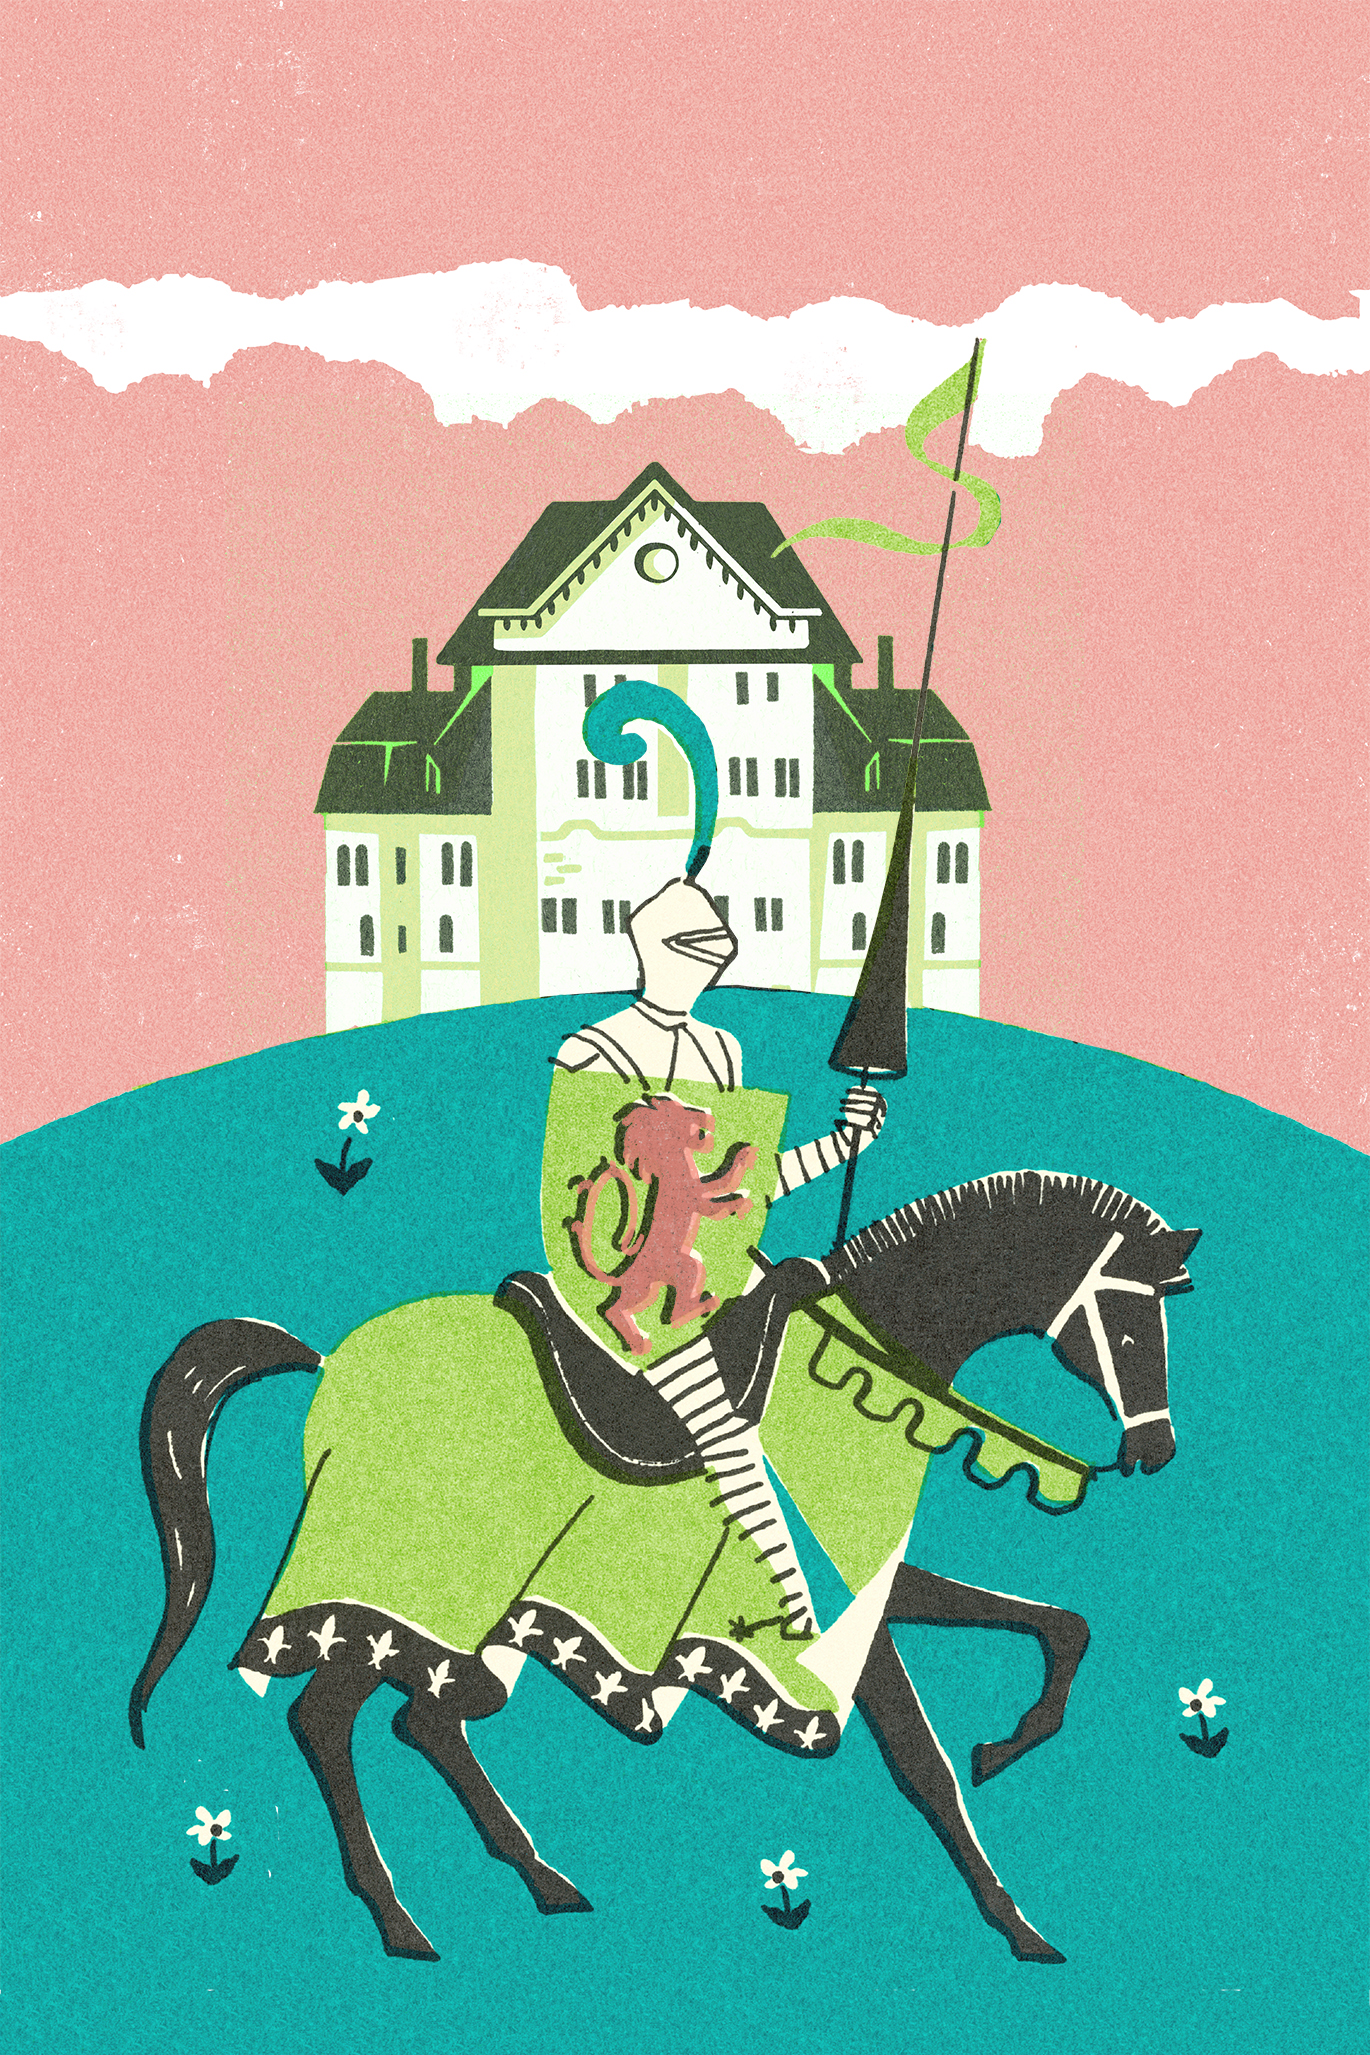 1950s image of a medieval knight in front of a large house